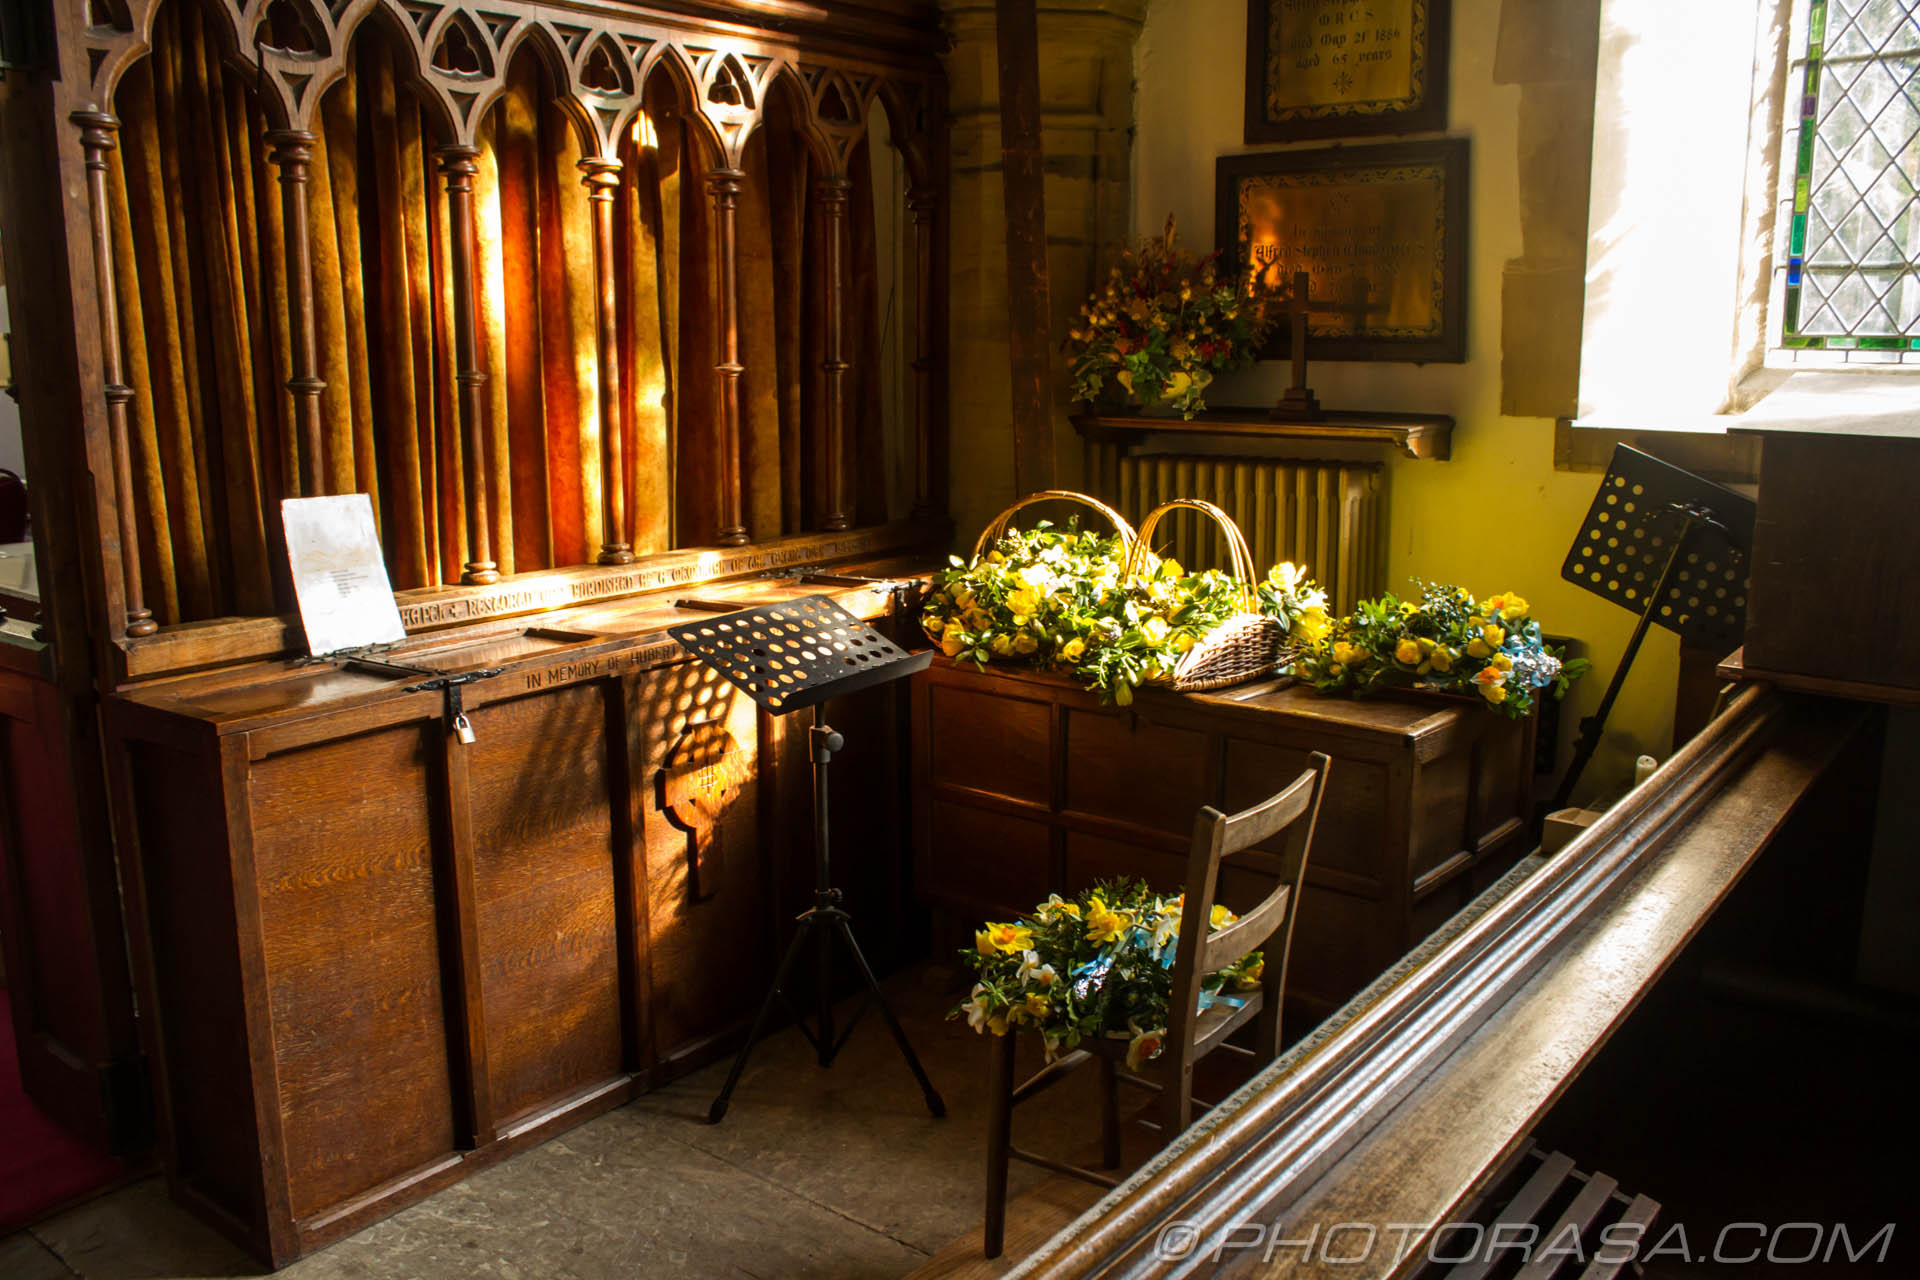 http://photorasa.com/saints-church-staplehurst-kent/flowers/